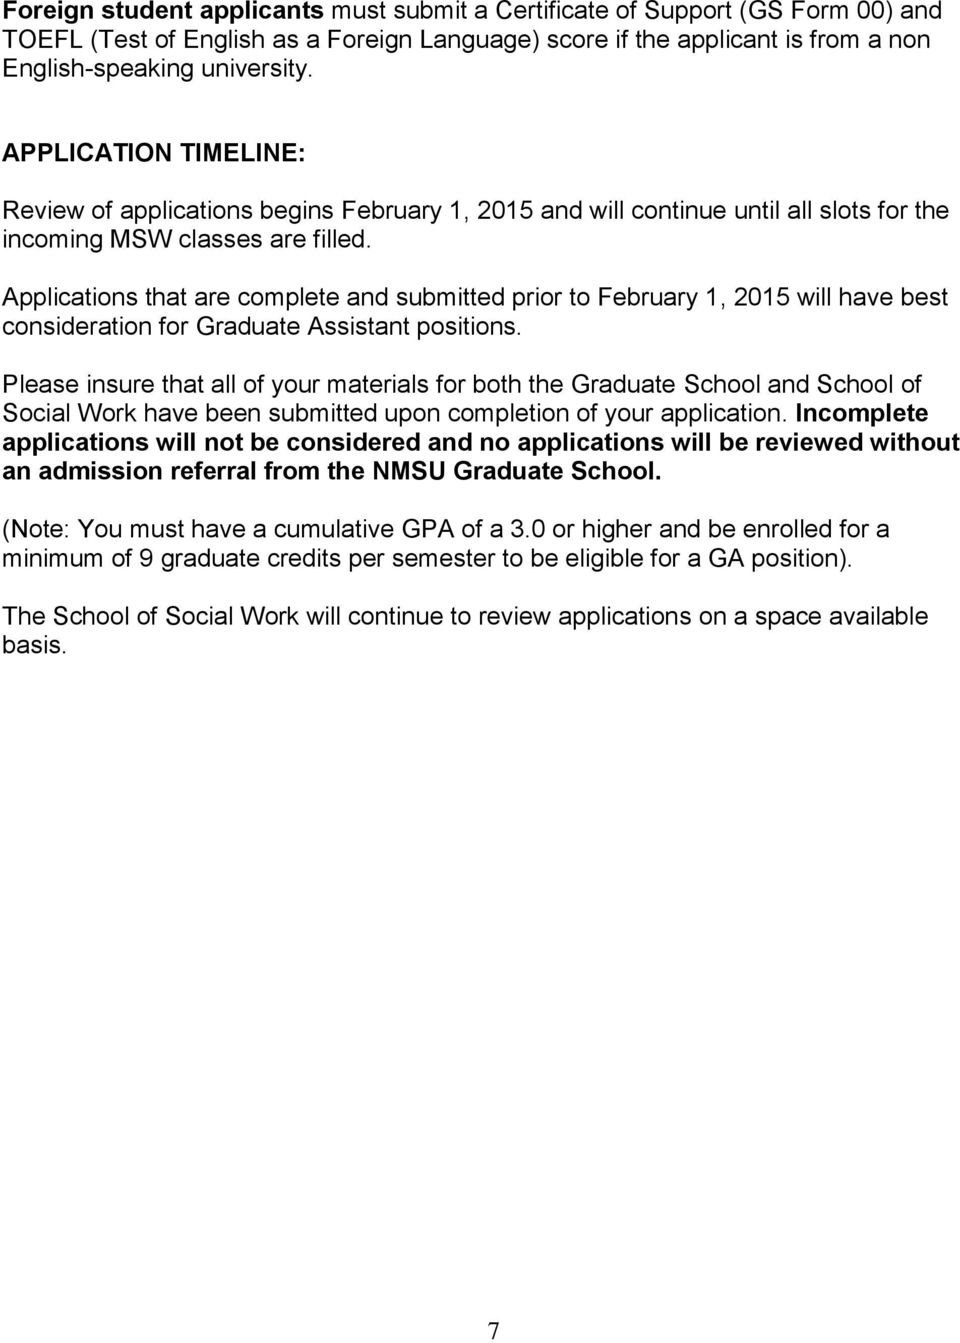 Applications that are complete and submitted prior to February 1, 2015 will have best consideration for Graduate Assistant positions.